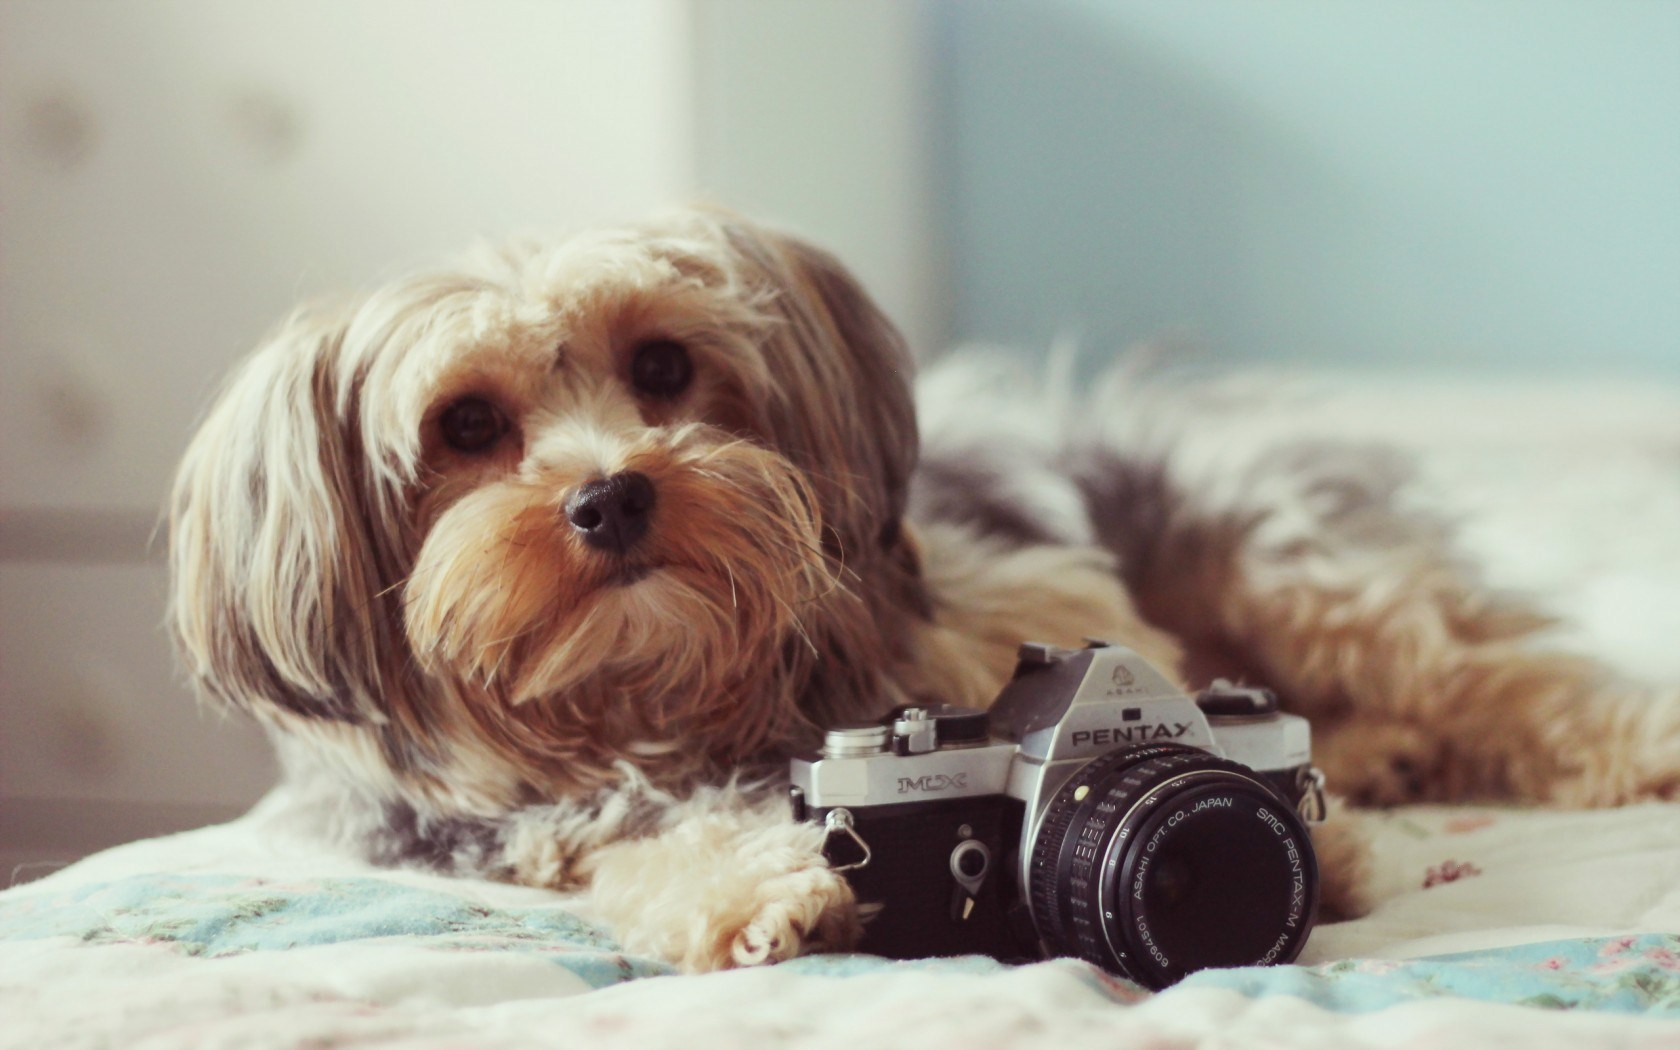 Dog Camera Mood Photo HD Wallpaper